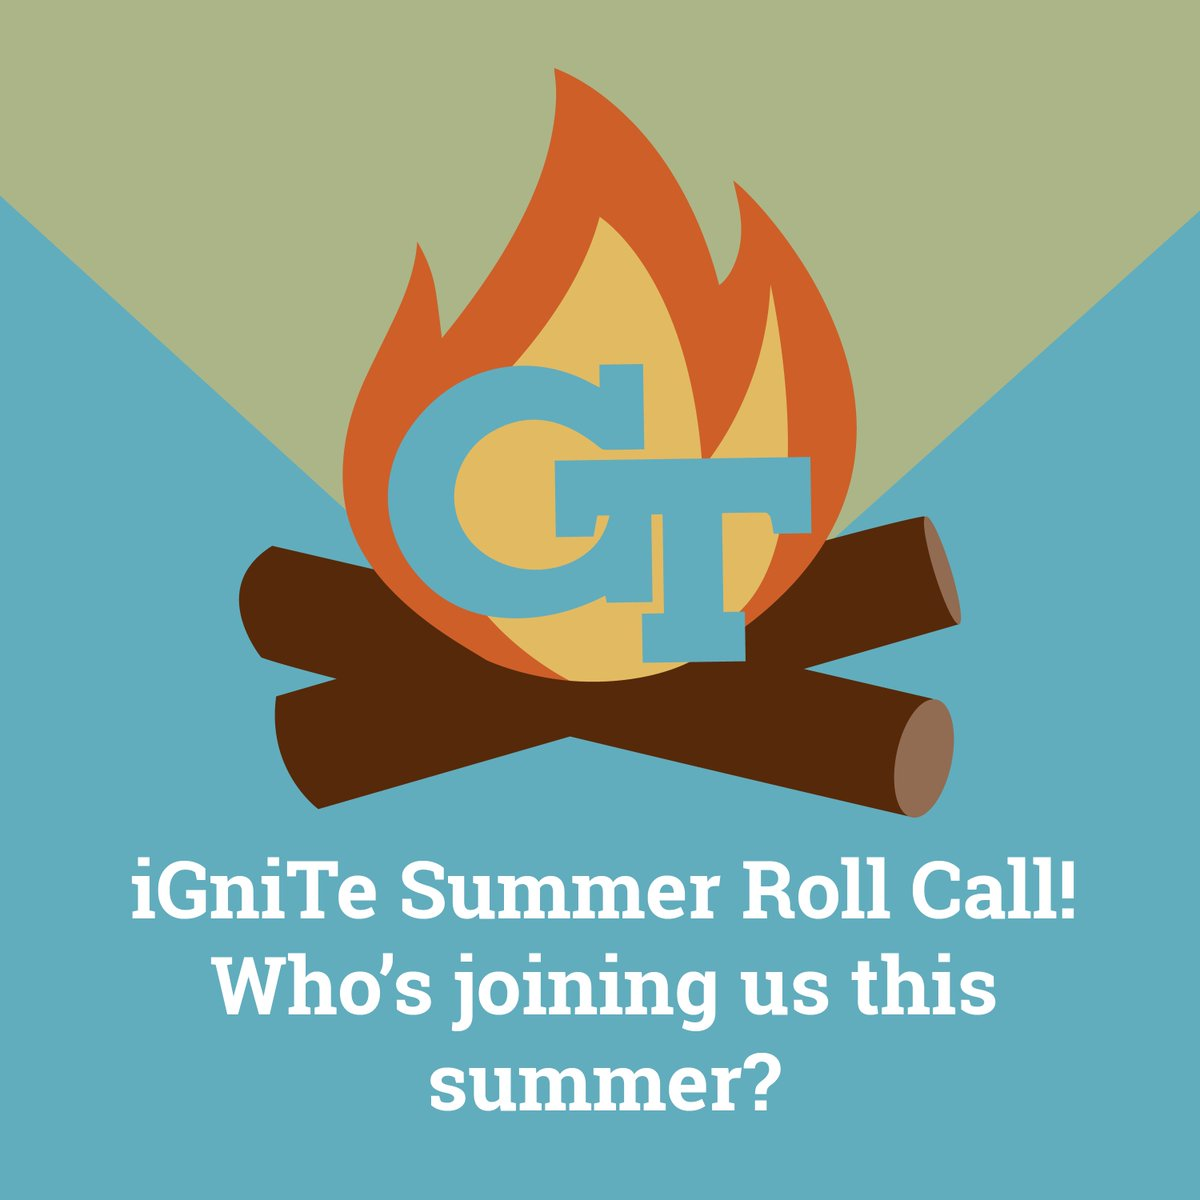 Georgia Tech Summer Session On Twitter Still Interested In Starting Your First Year At Georgiatech In The Summer Big News Ignitegeorgiatech Application Deadline Is Extended To May 1 Questions Summer At Https T Co T6vjcedfle